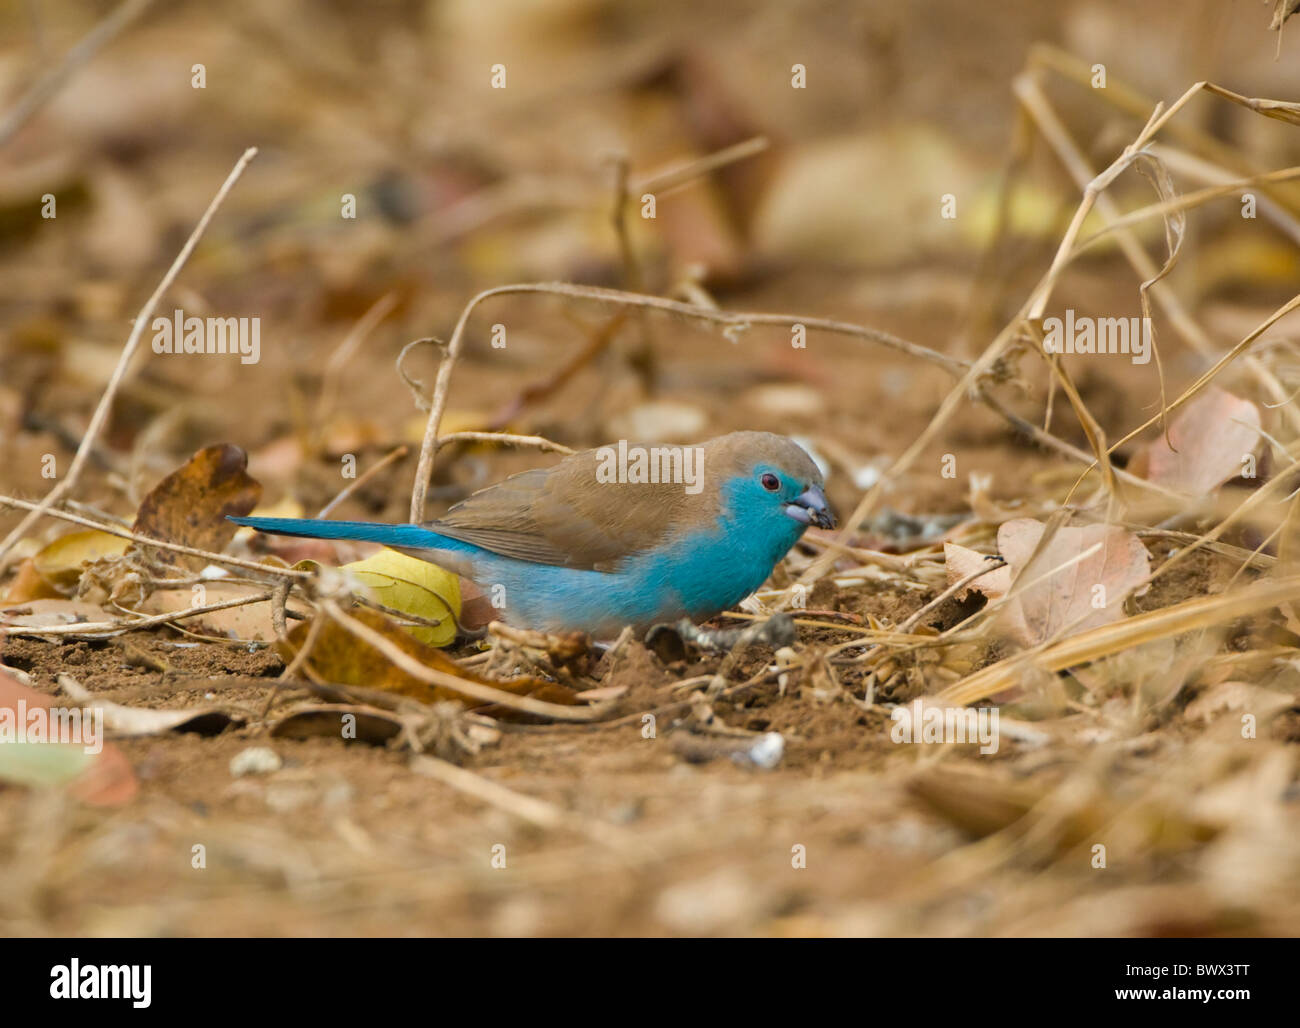 Blue Waxbill Uraeginthus angolensis Parco Nazionale Kruger Sud Africa Foto Stock